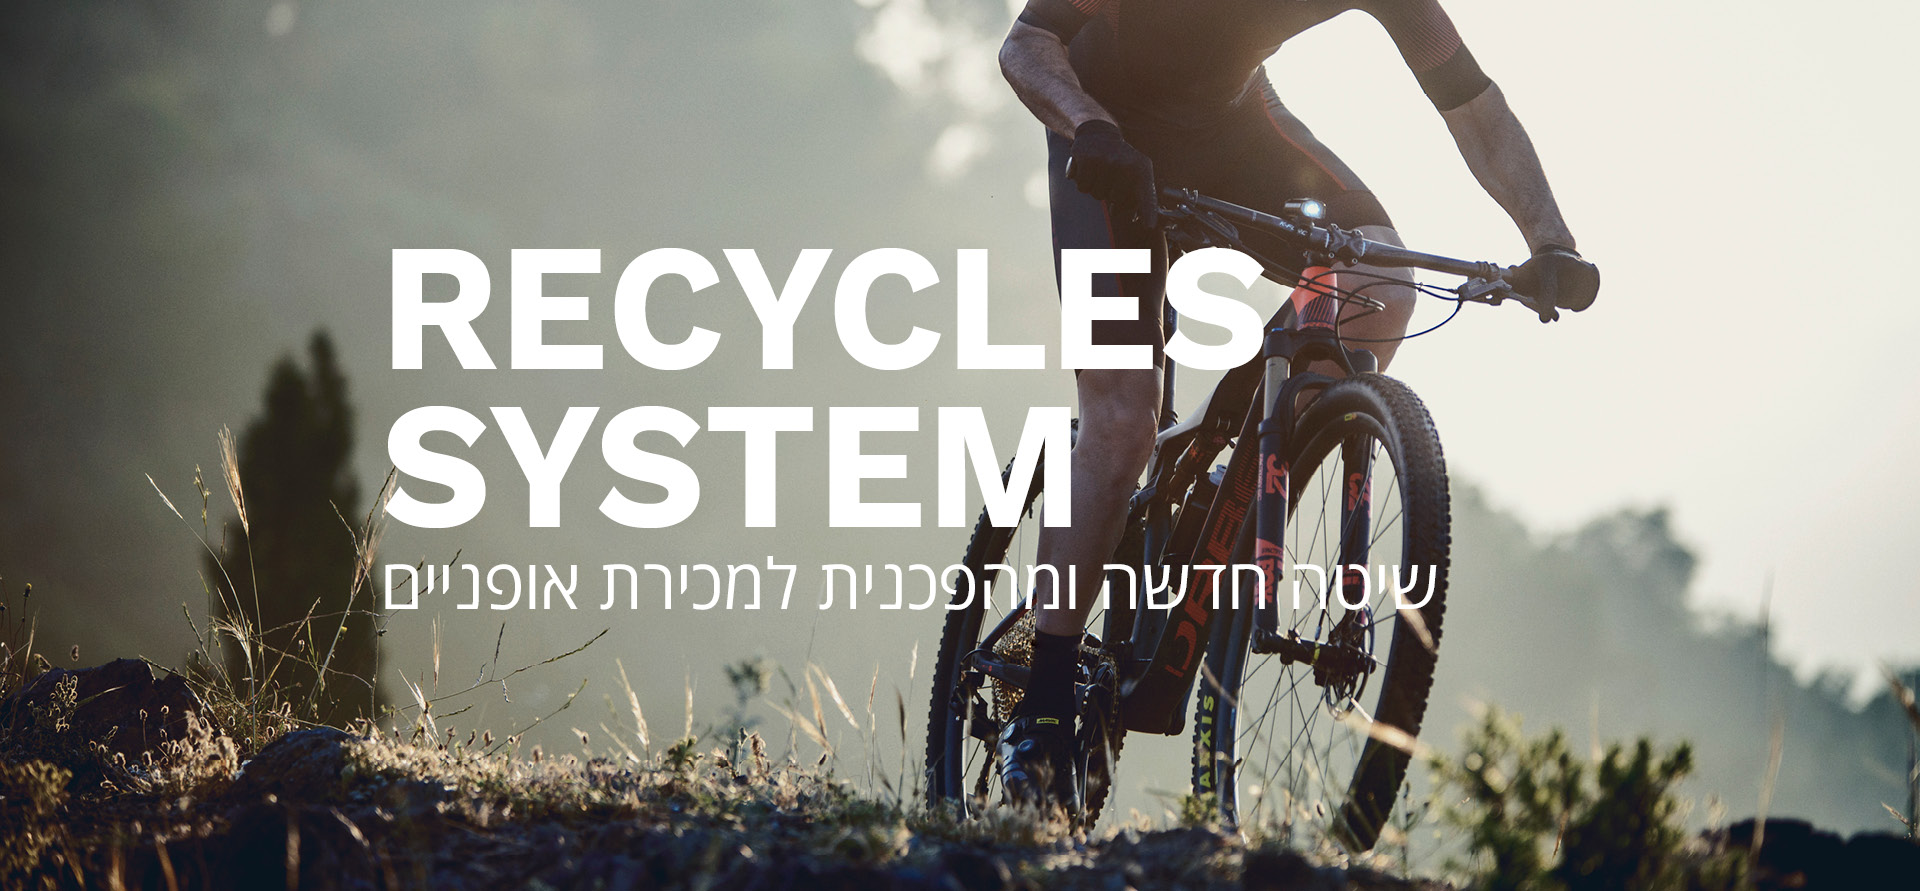 RECYCLES SYSTEMS 3